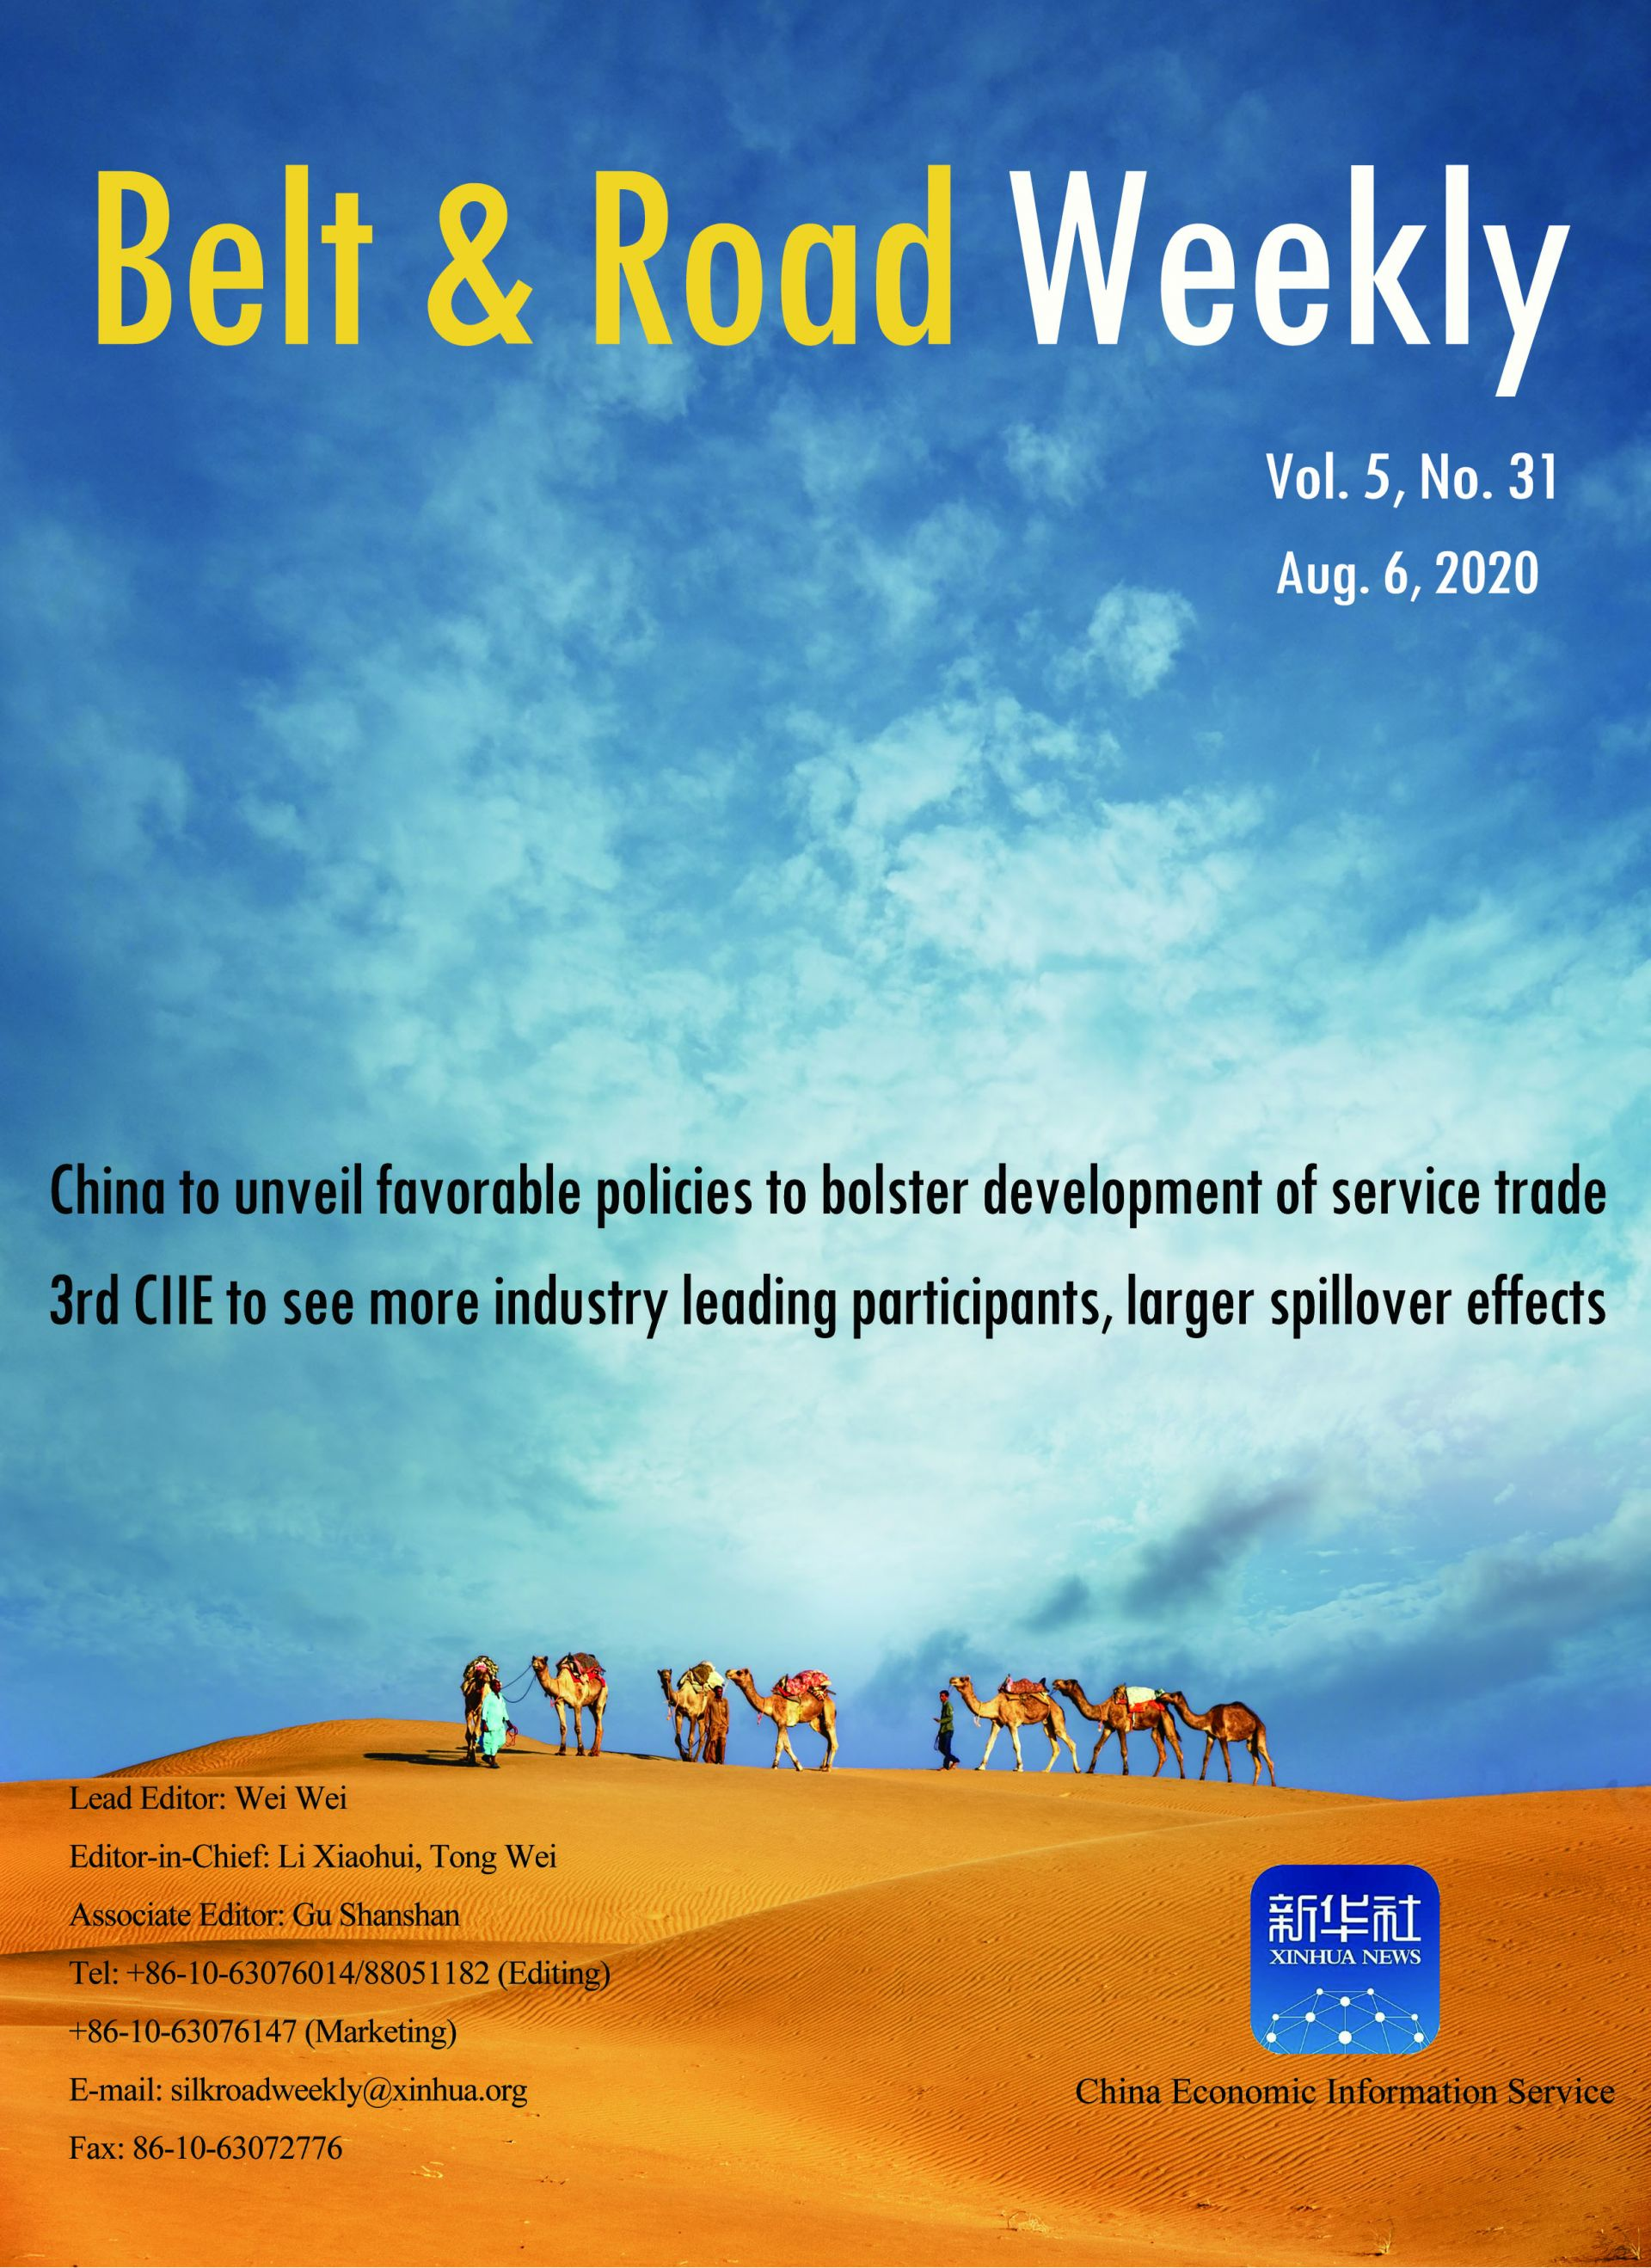 Belt and Road Weekly Vol. 5 No. 31